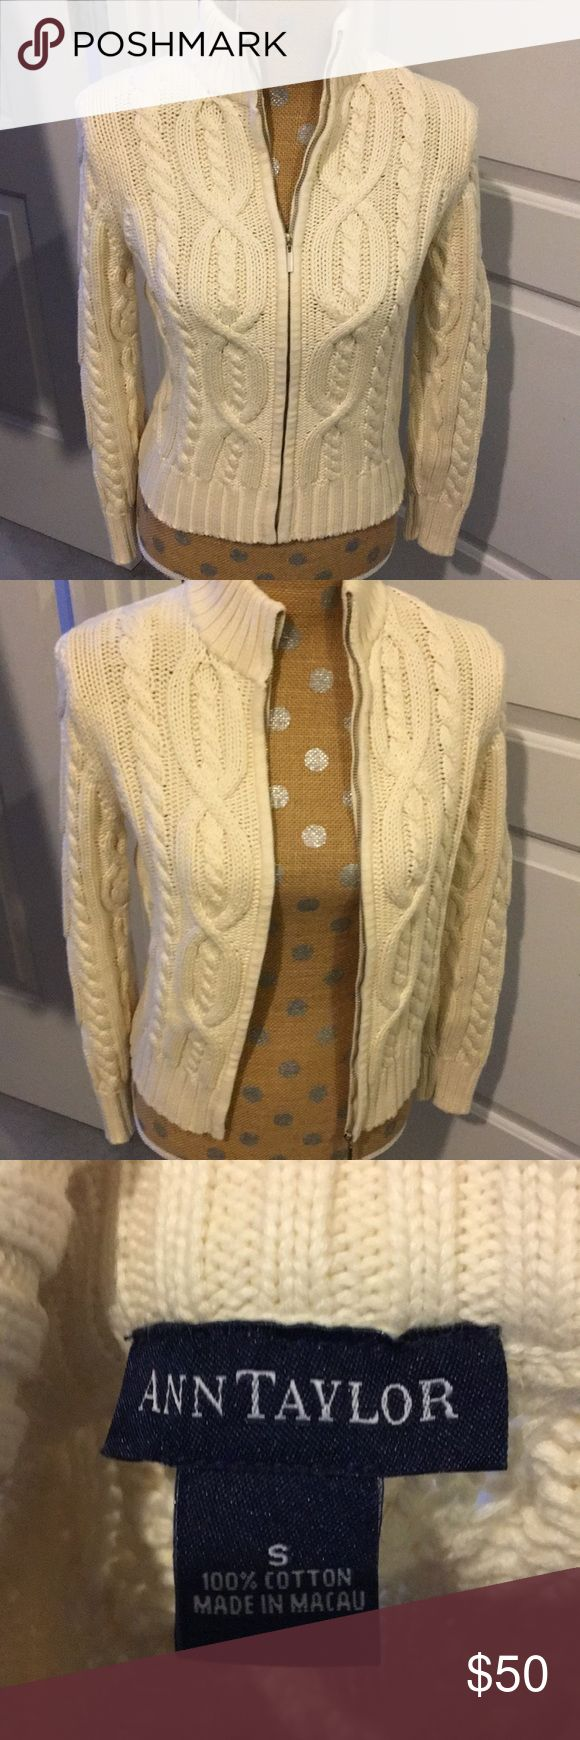 Ann Taylor cableknit cream zip up! Looks new! Beautiful zip up sweater. Ann Taylor Sweaters Cardigans